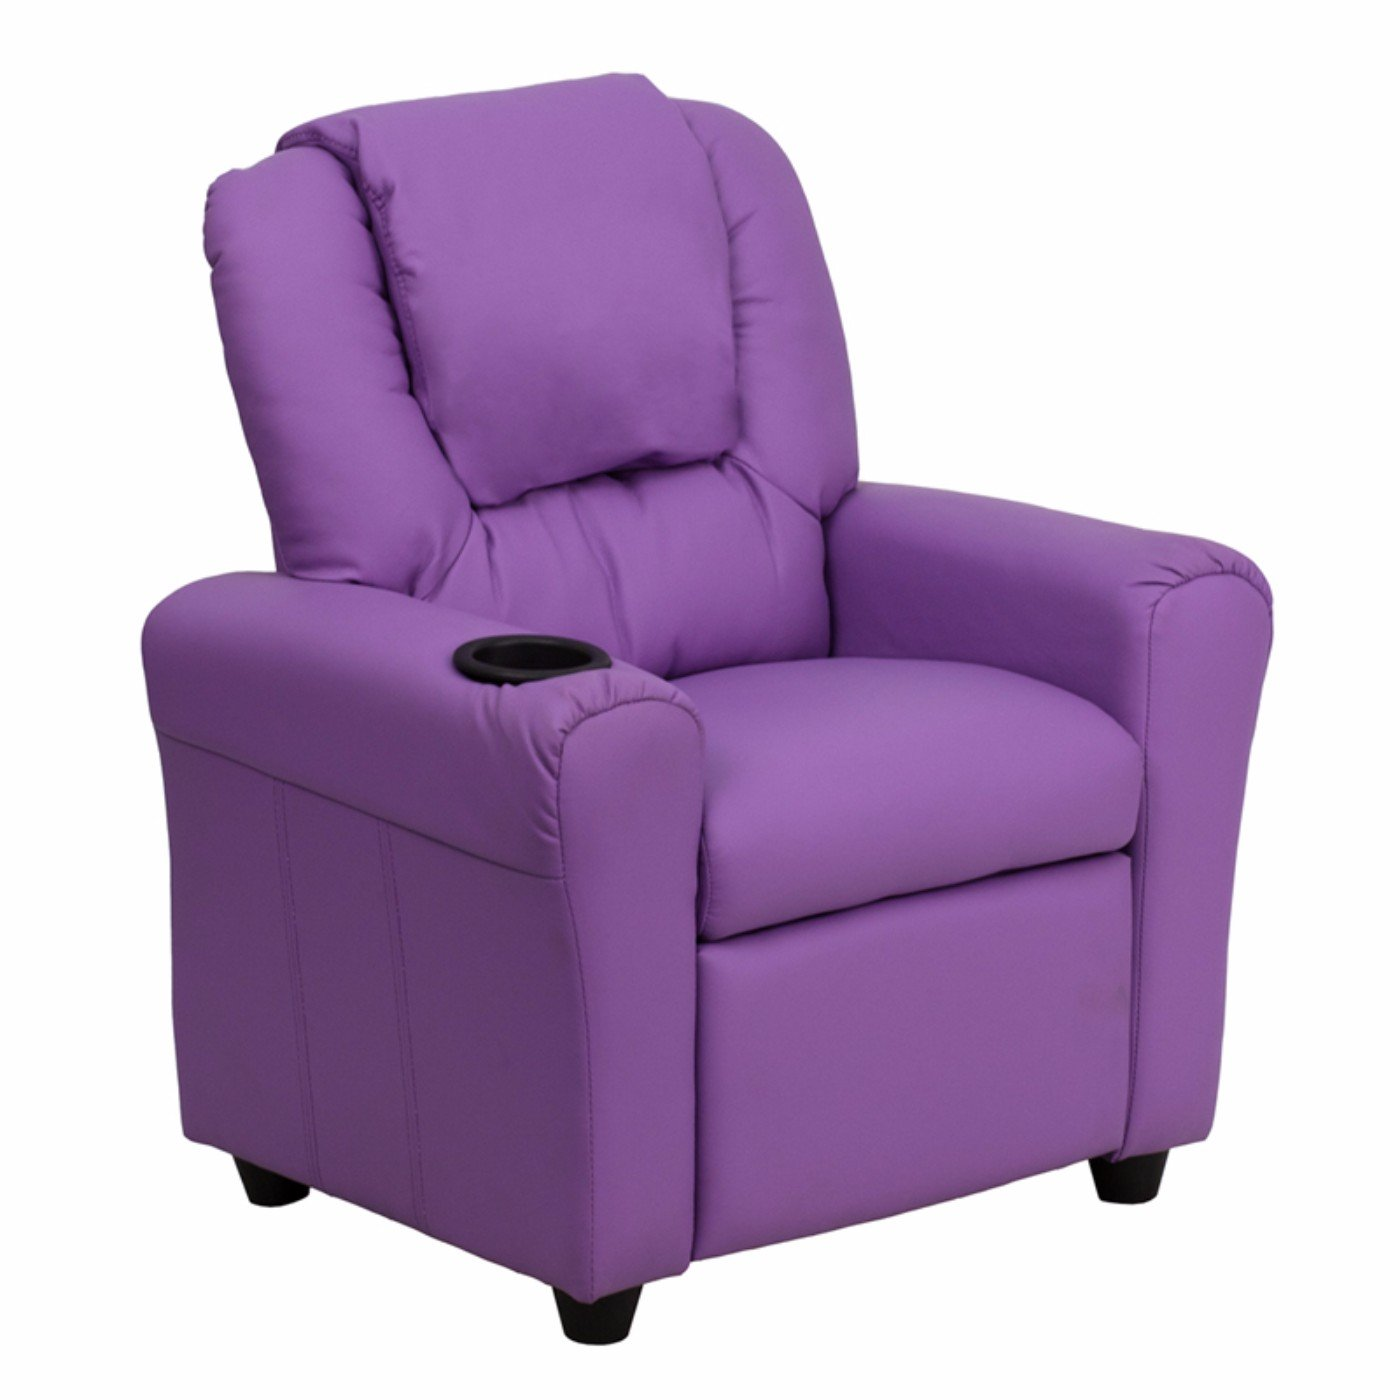 Winston Direct Kids Series Contemporary Vinyl Recliner with Cup Holder and Headrest - Lavender